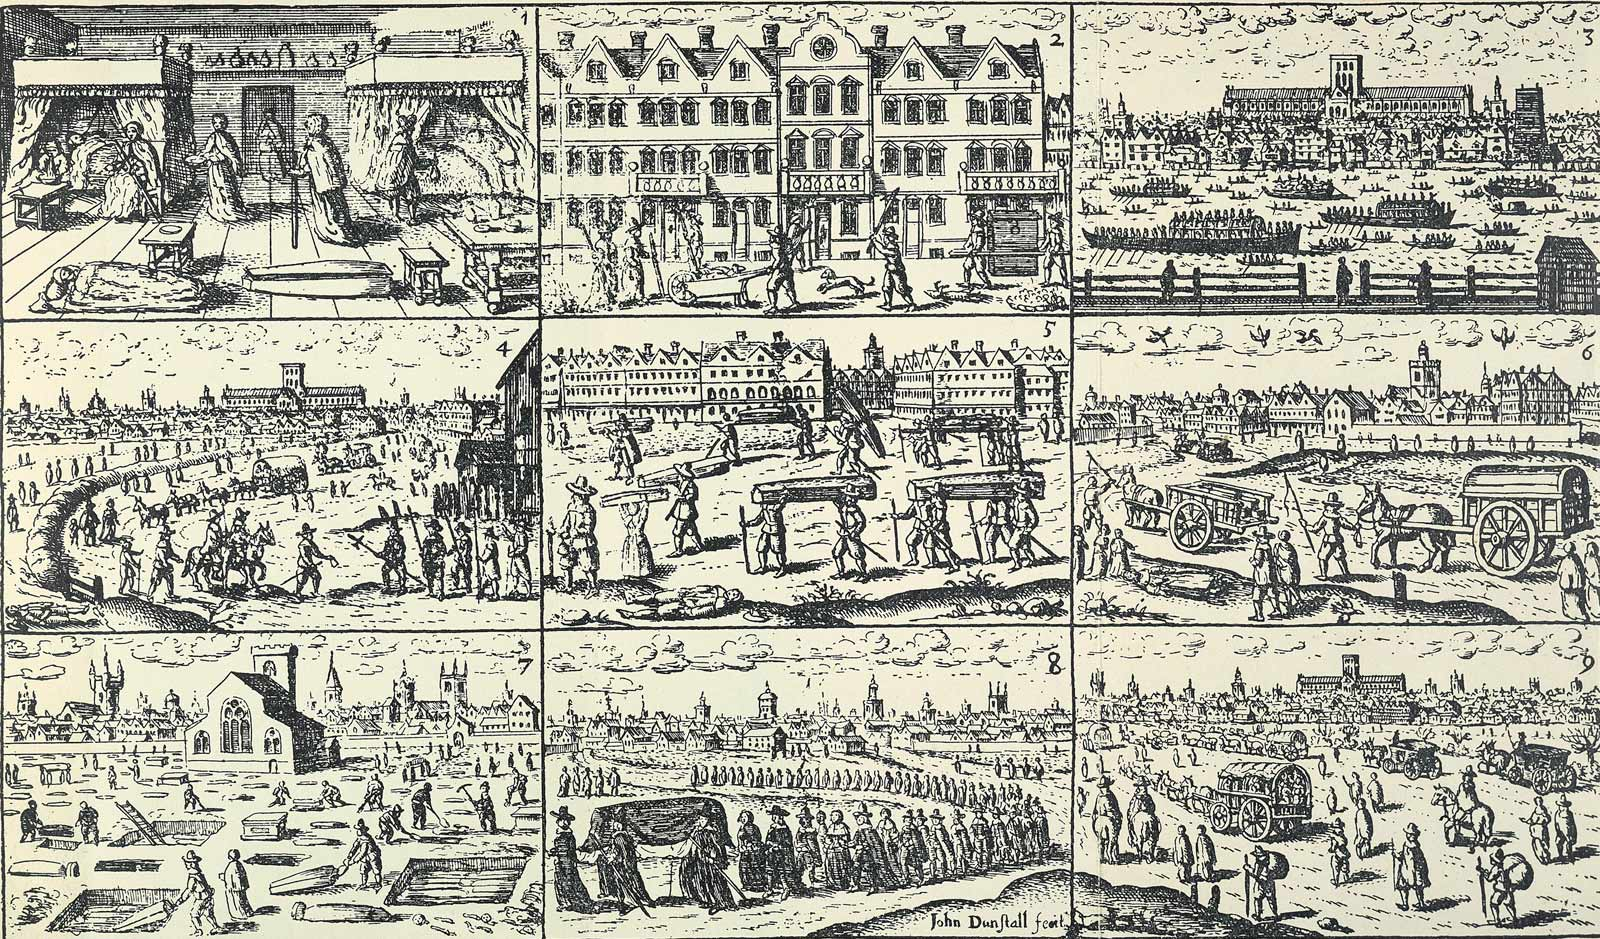 In 1665 London was struck by a terrifying plague that killed around 100,000 people. The text summarises bills of mortality (lists of the number of dead) in the 1665 and previous plague visitations.